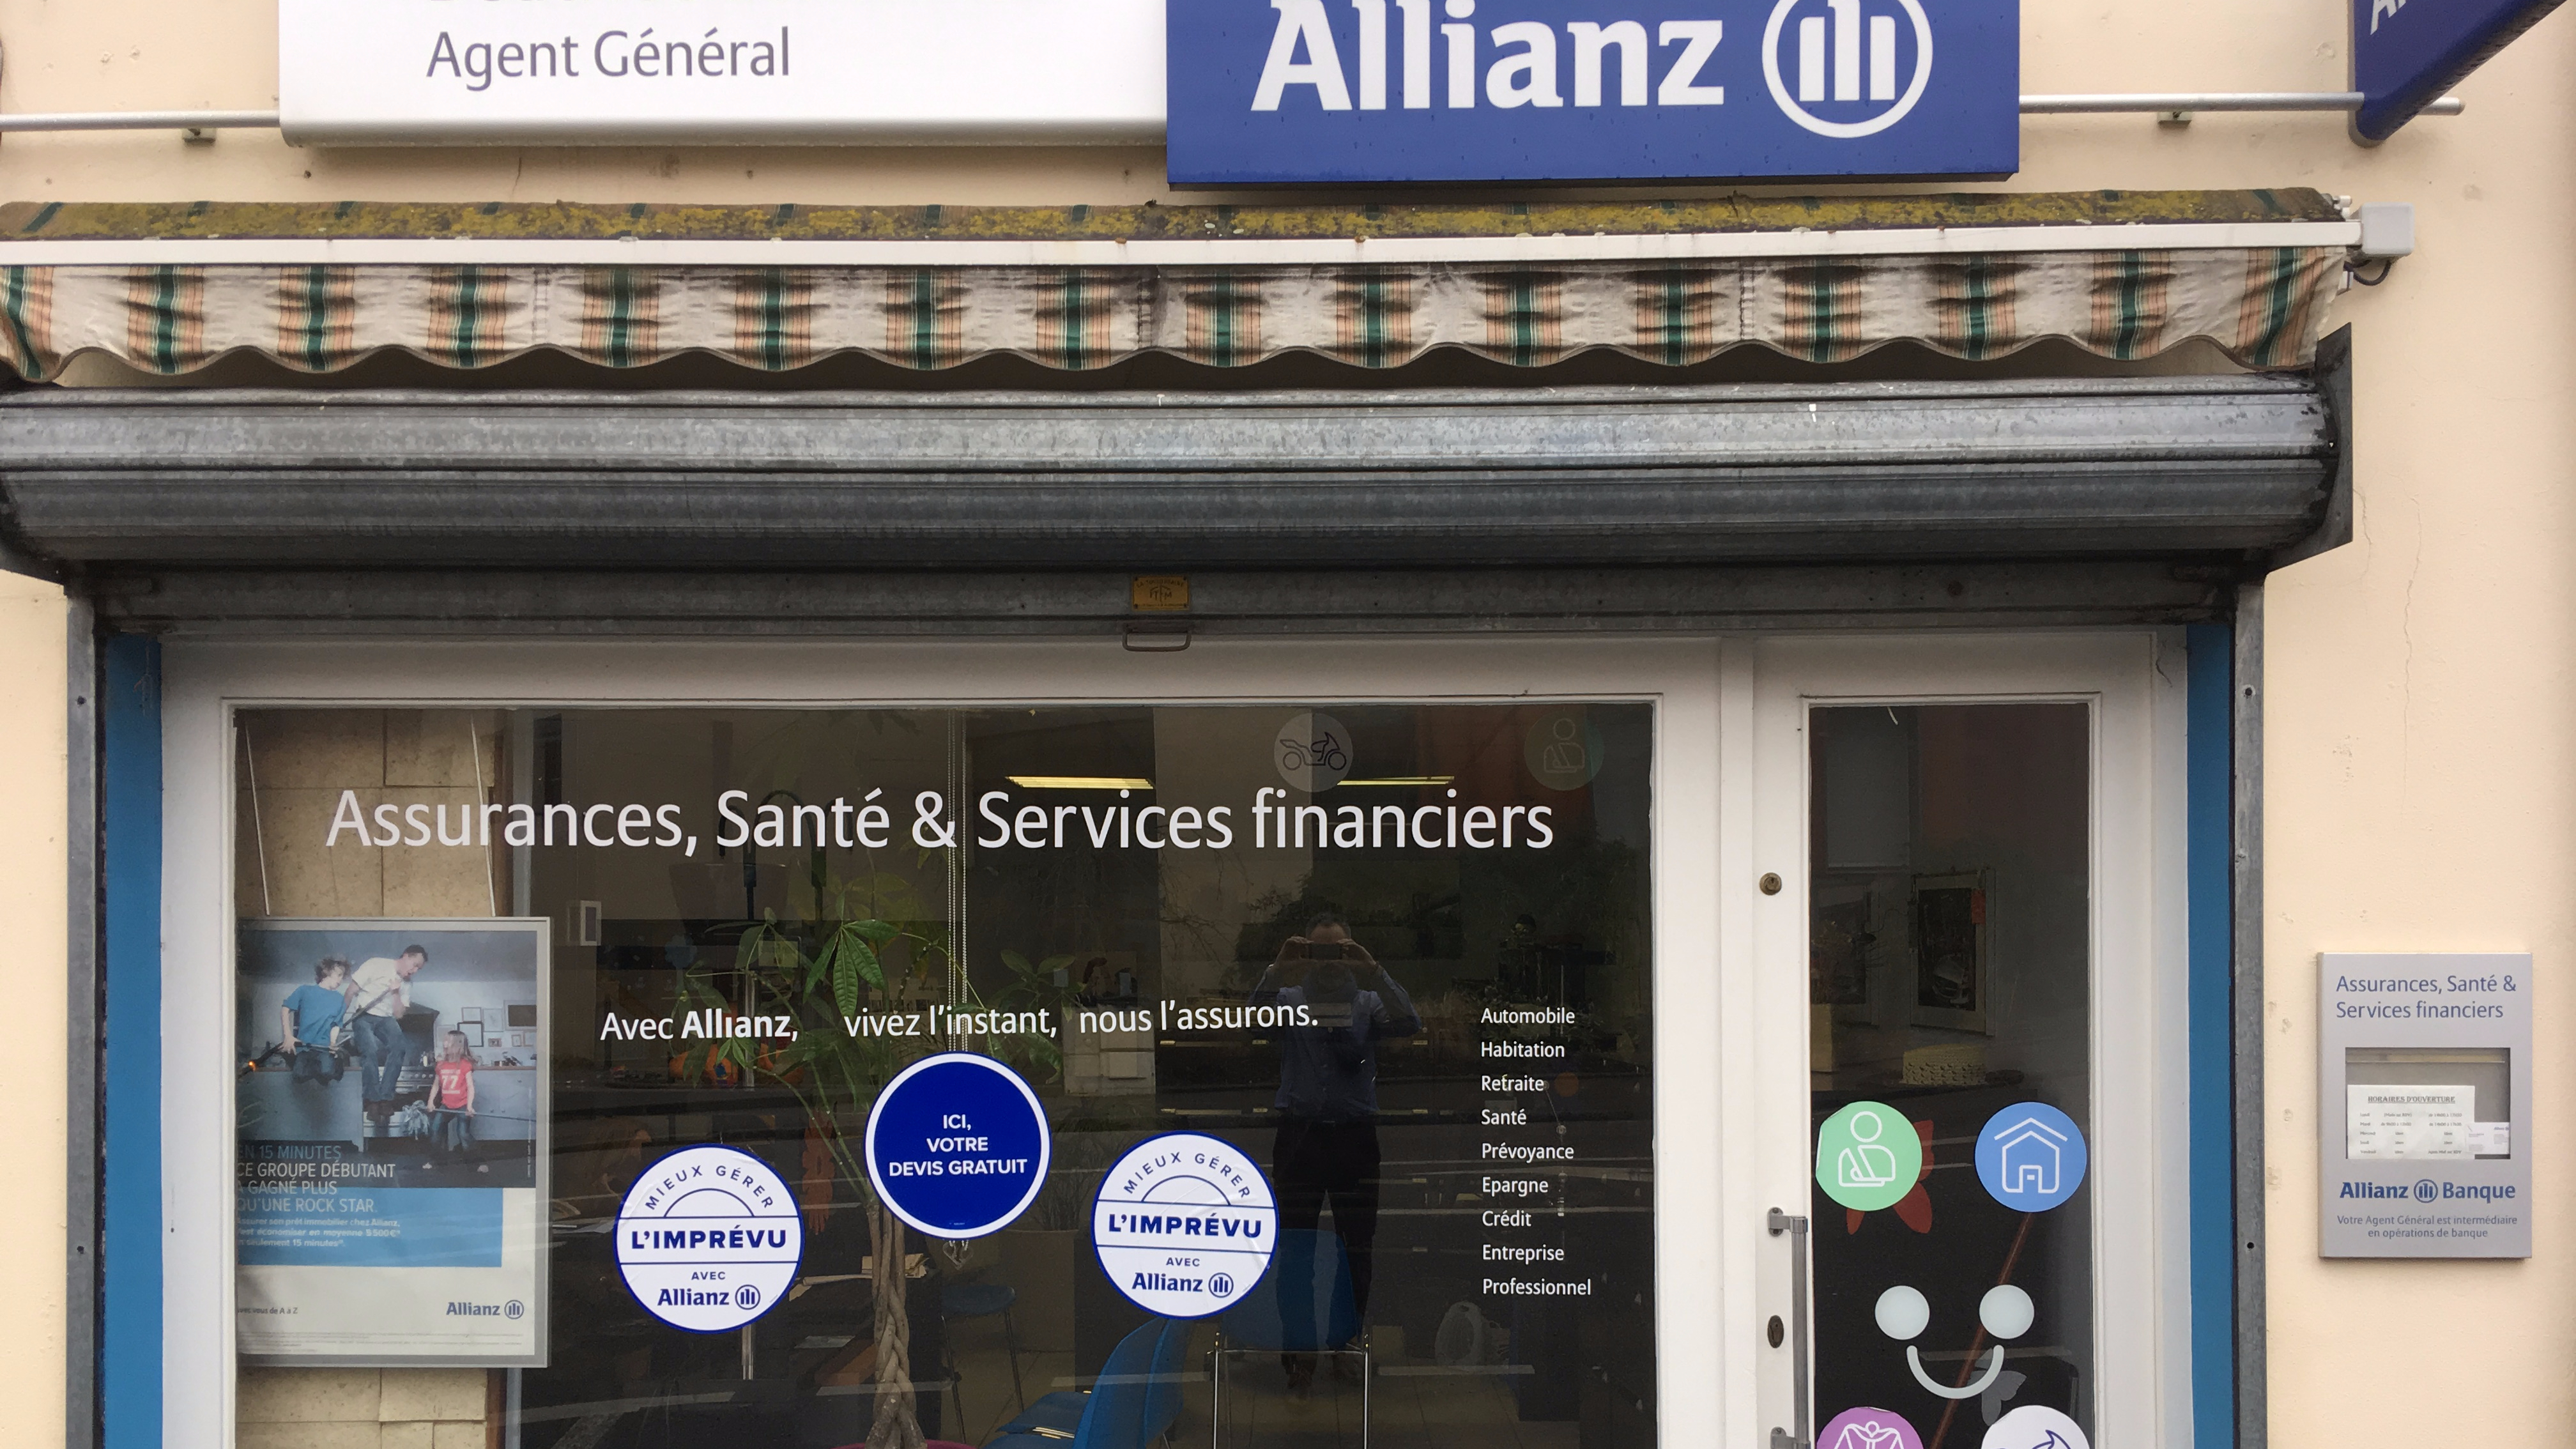 Allianz NANCY FROUARD - Beatrice LEMOINE